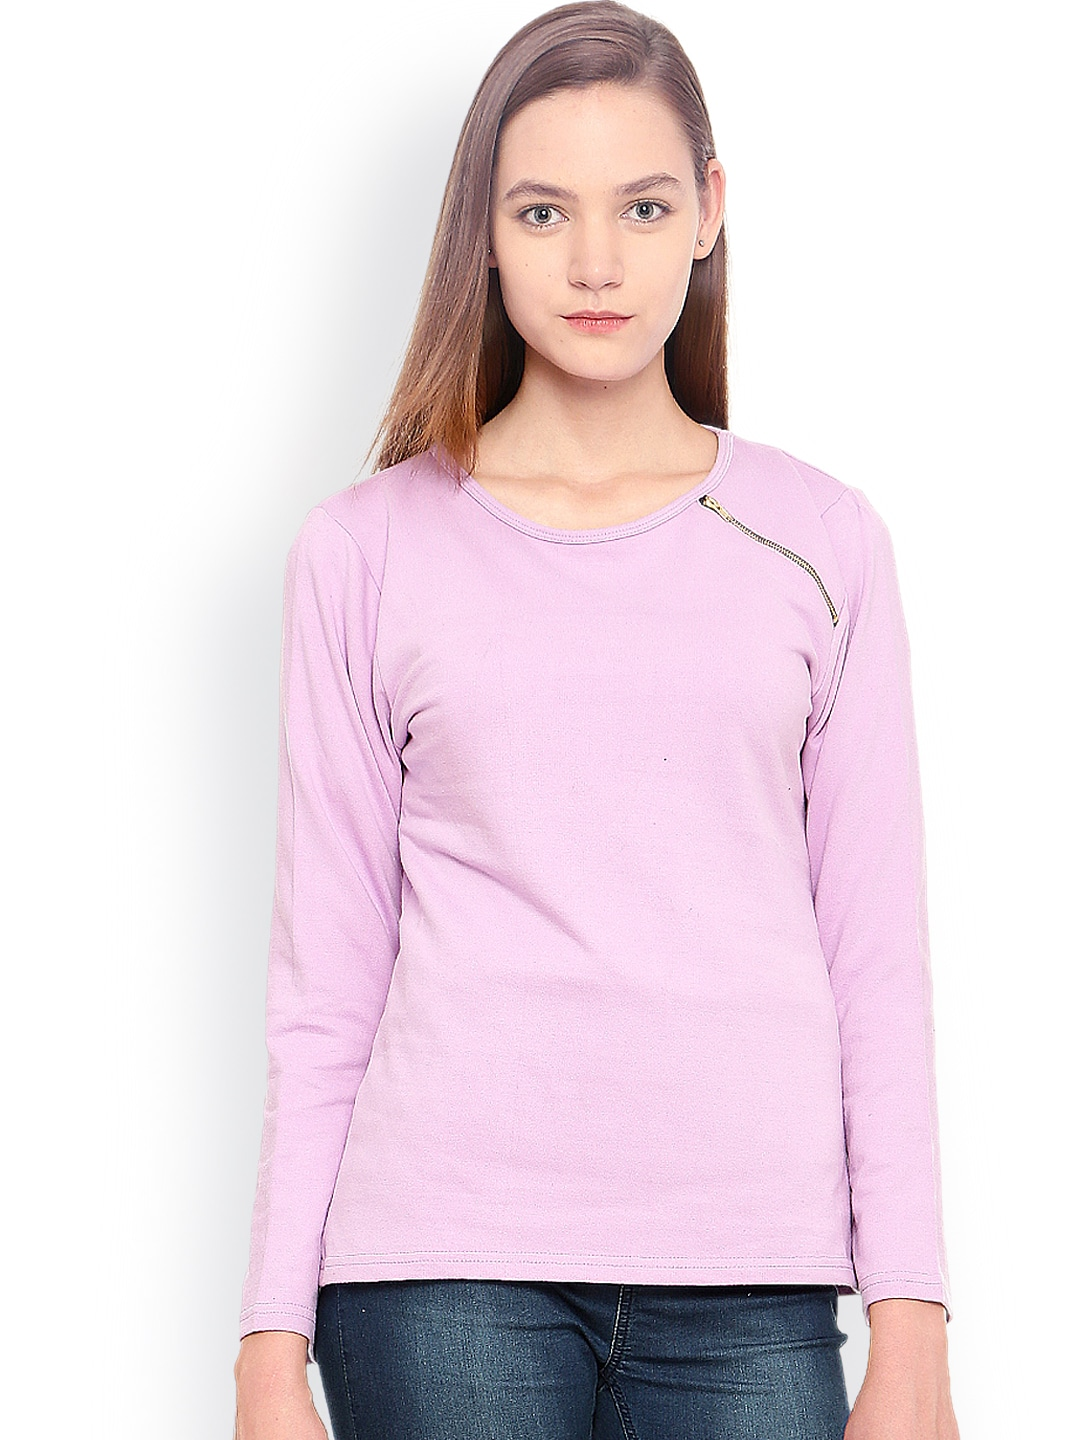 Vvoguish Purple Sweatshirt